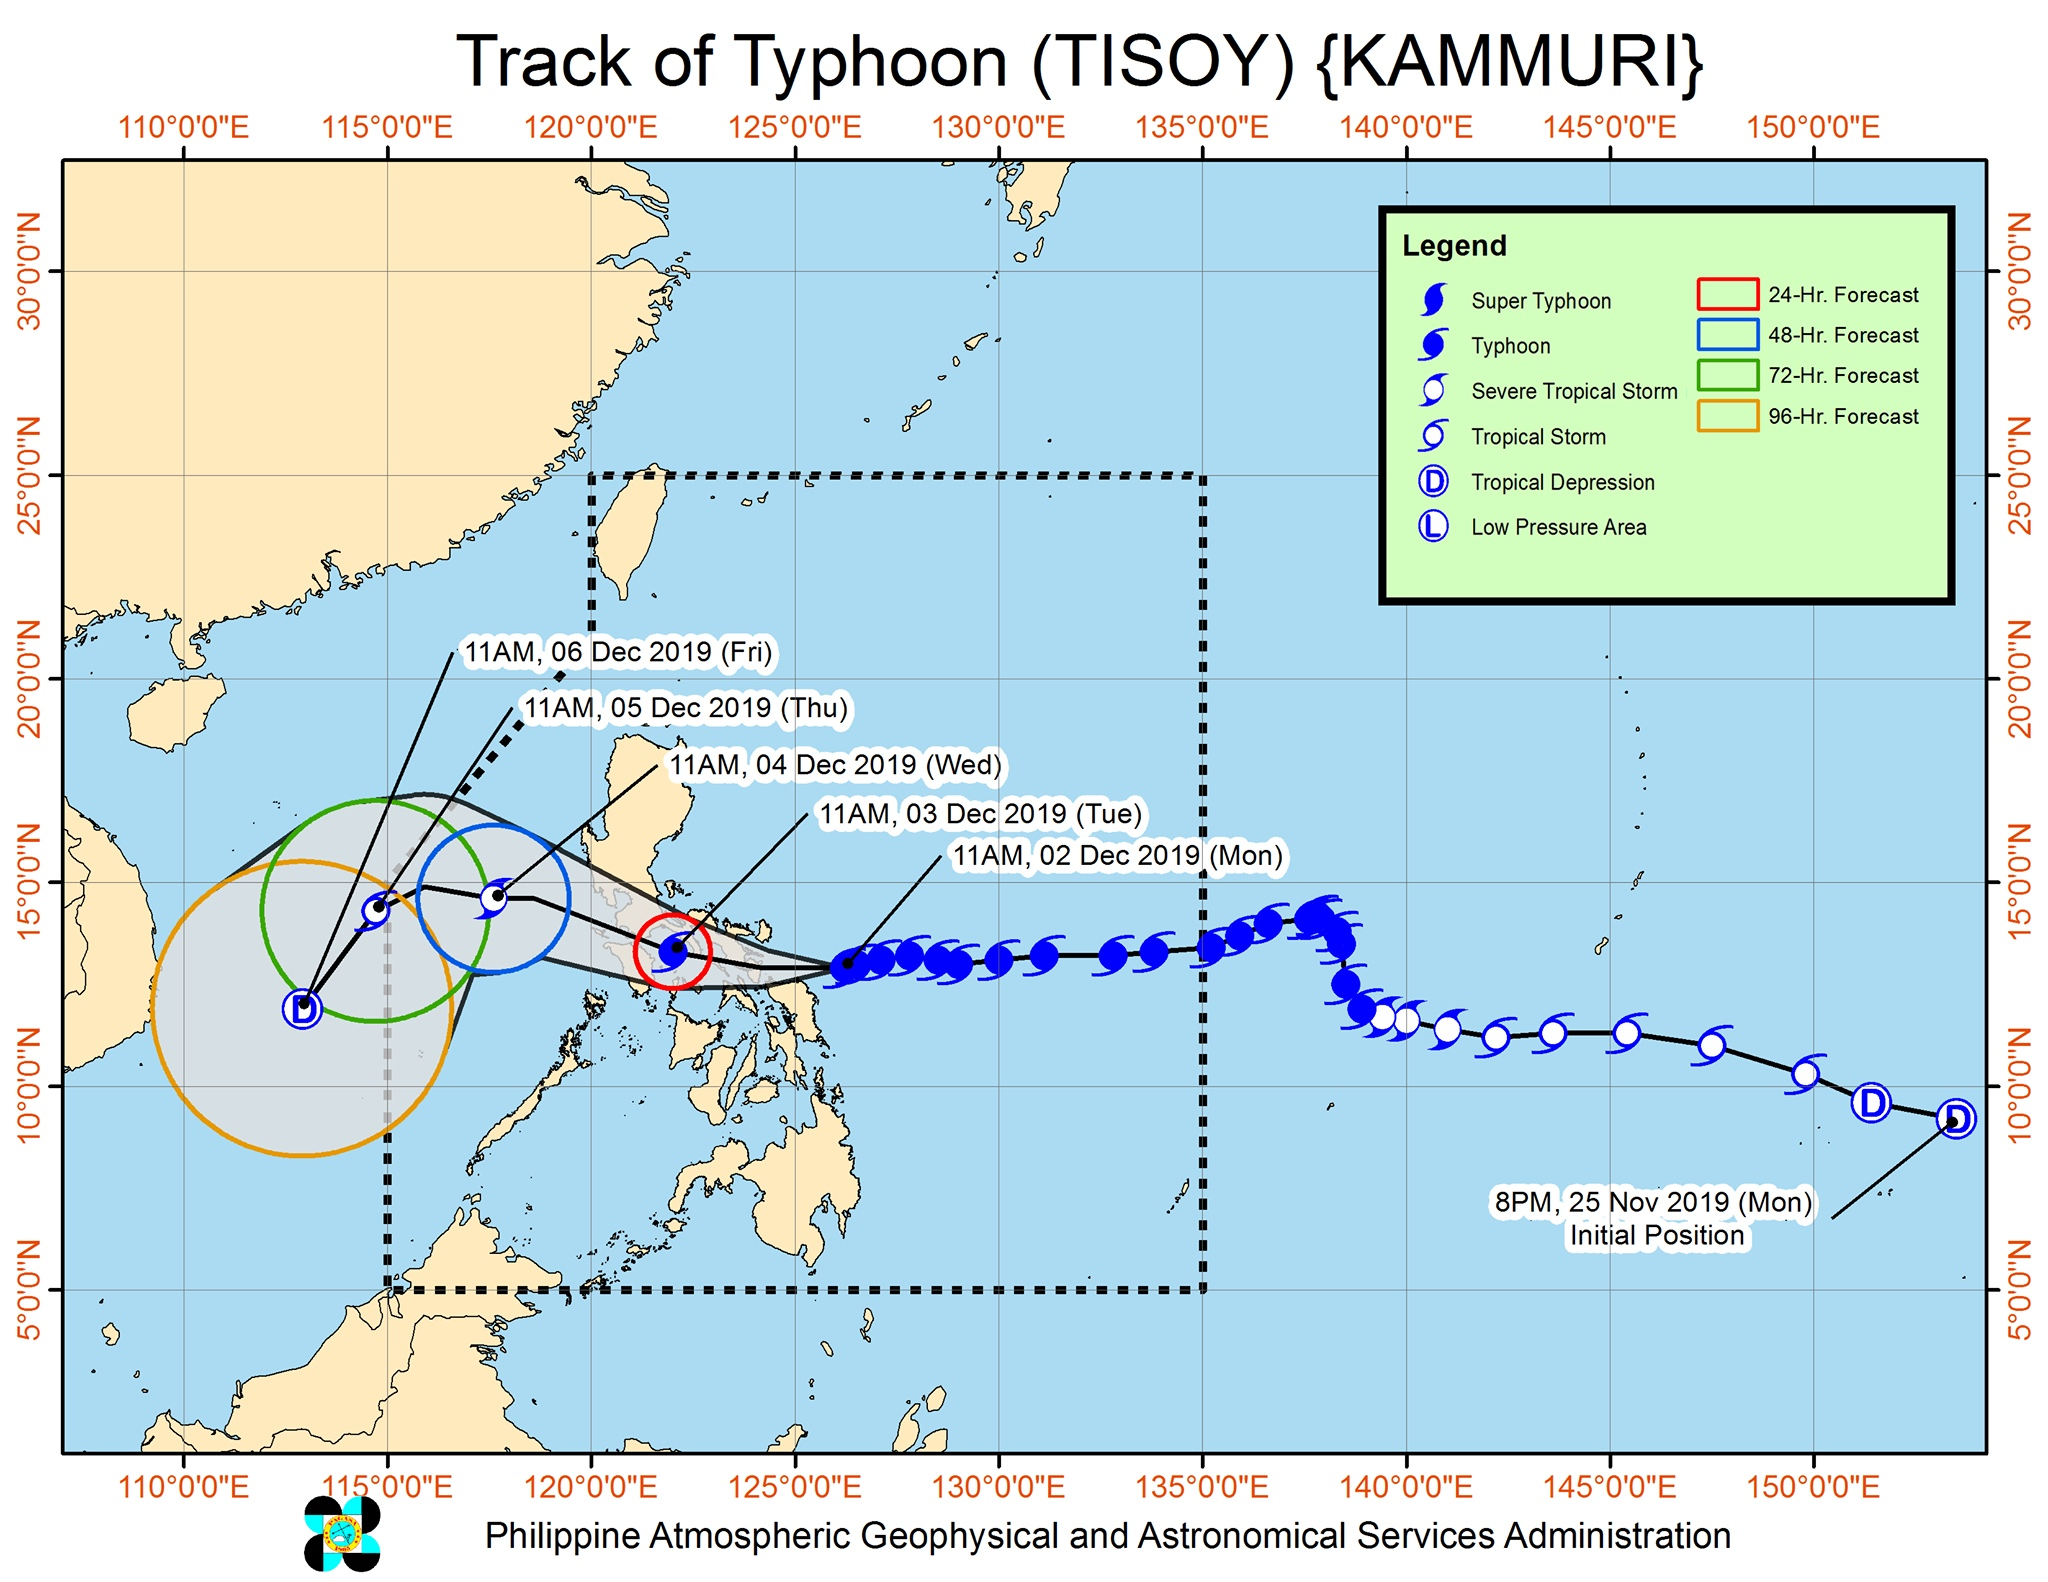 Forecast track of Typhoon Tisoy (Kammuri) as of December 2, 2019, 2 pm. Image from PAGASA